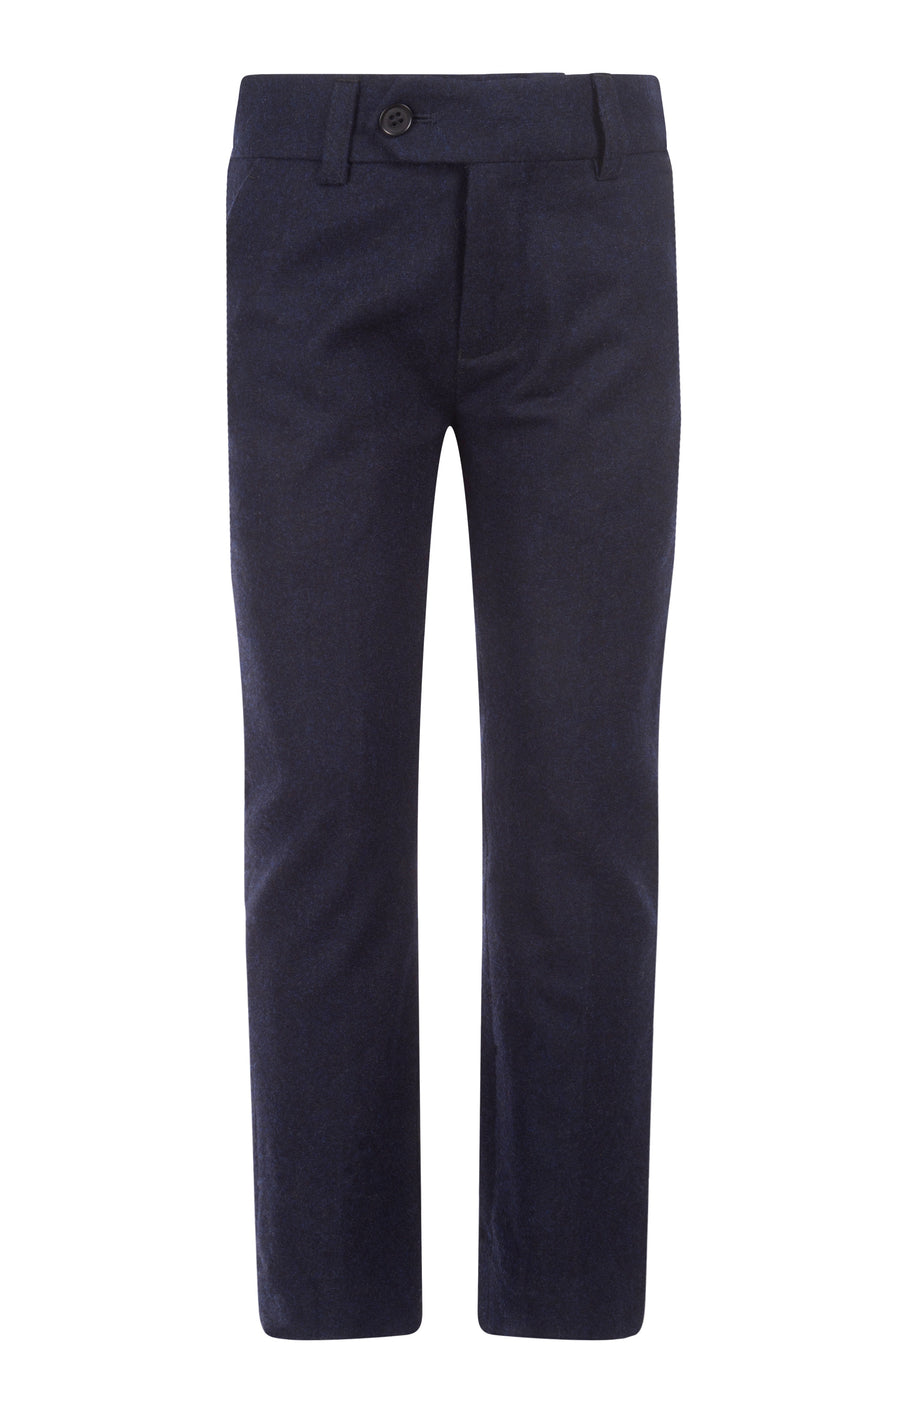 Navy Tailored Wool Pants by Appaman